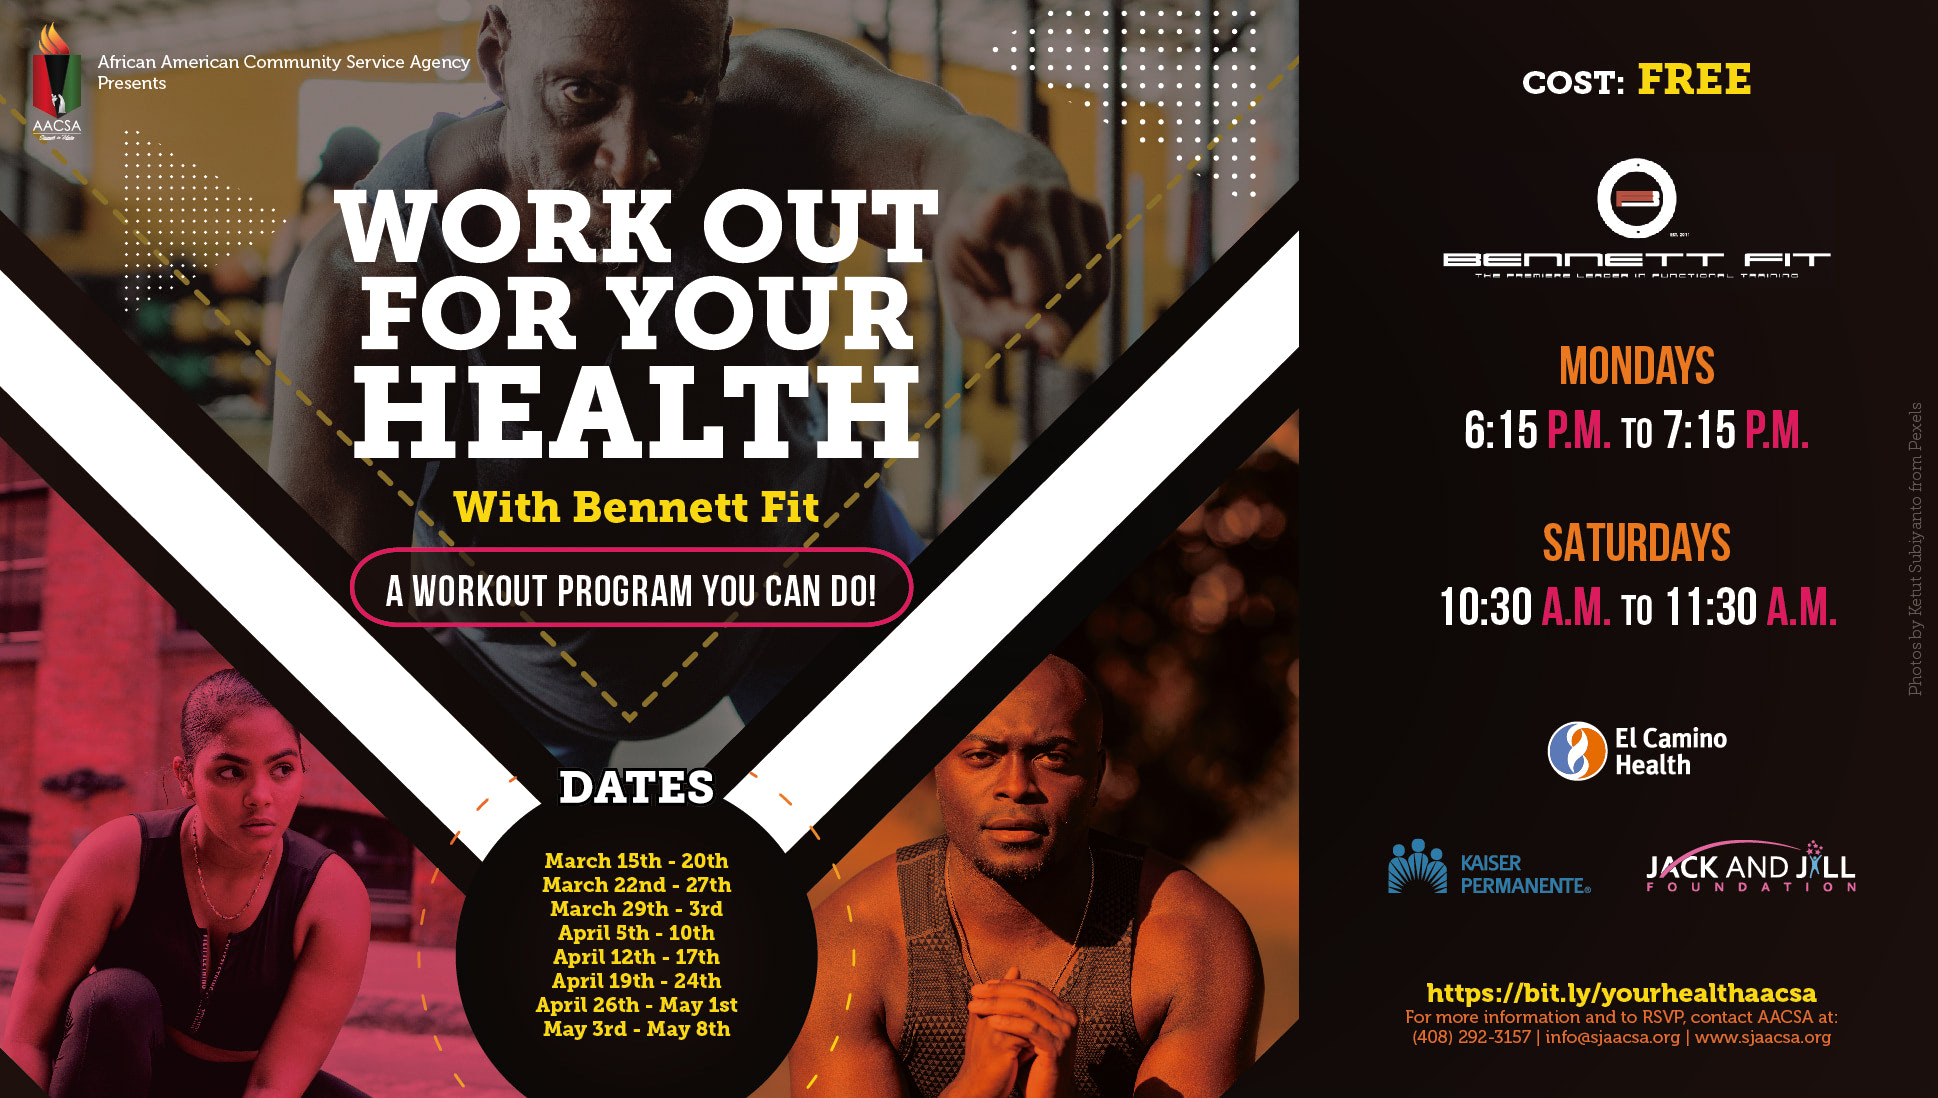 Banner for the AACSA Event: Work Out For Your Health with Bennett Fit. A workout program you can do! Event Dates: Saturday May 1st, 10:30am to 11:30am; Monday May 3rd, 6:15pm to 7:15pm; & Saturday May 8th. 10:30am to 11:30am. Free to attend! To register, visit bit.ly/yourhealthaacsa